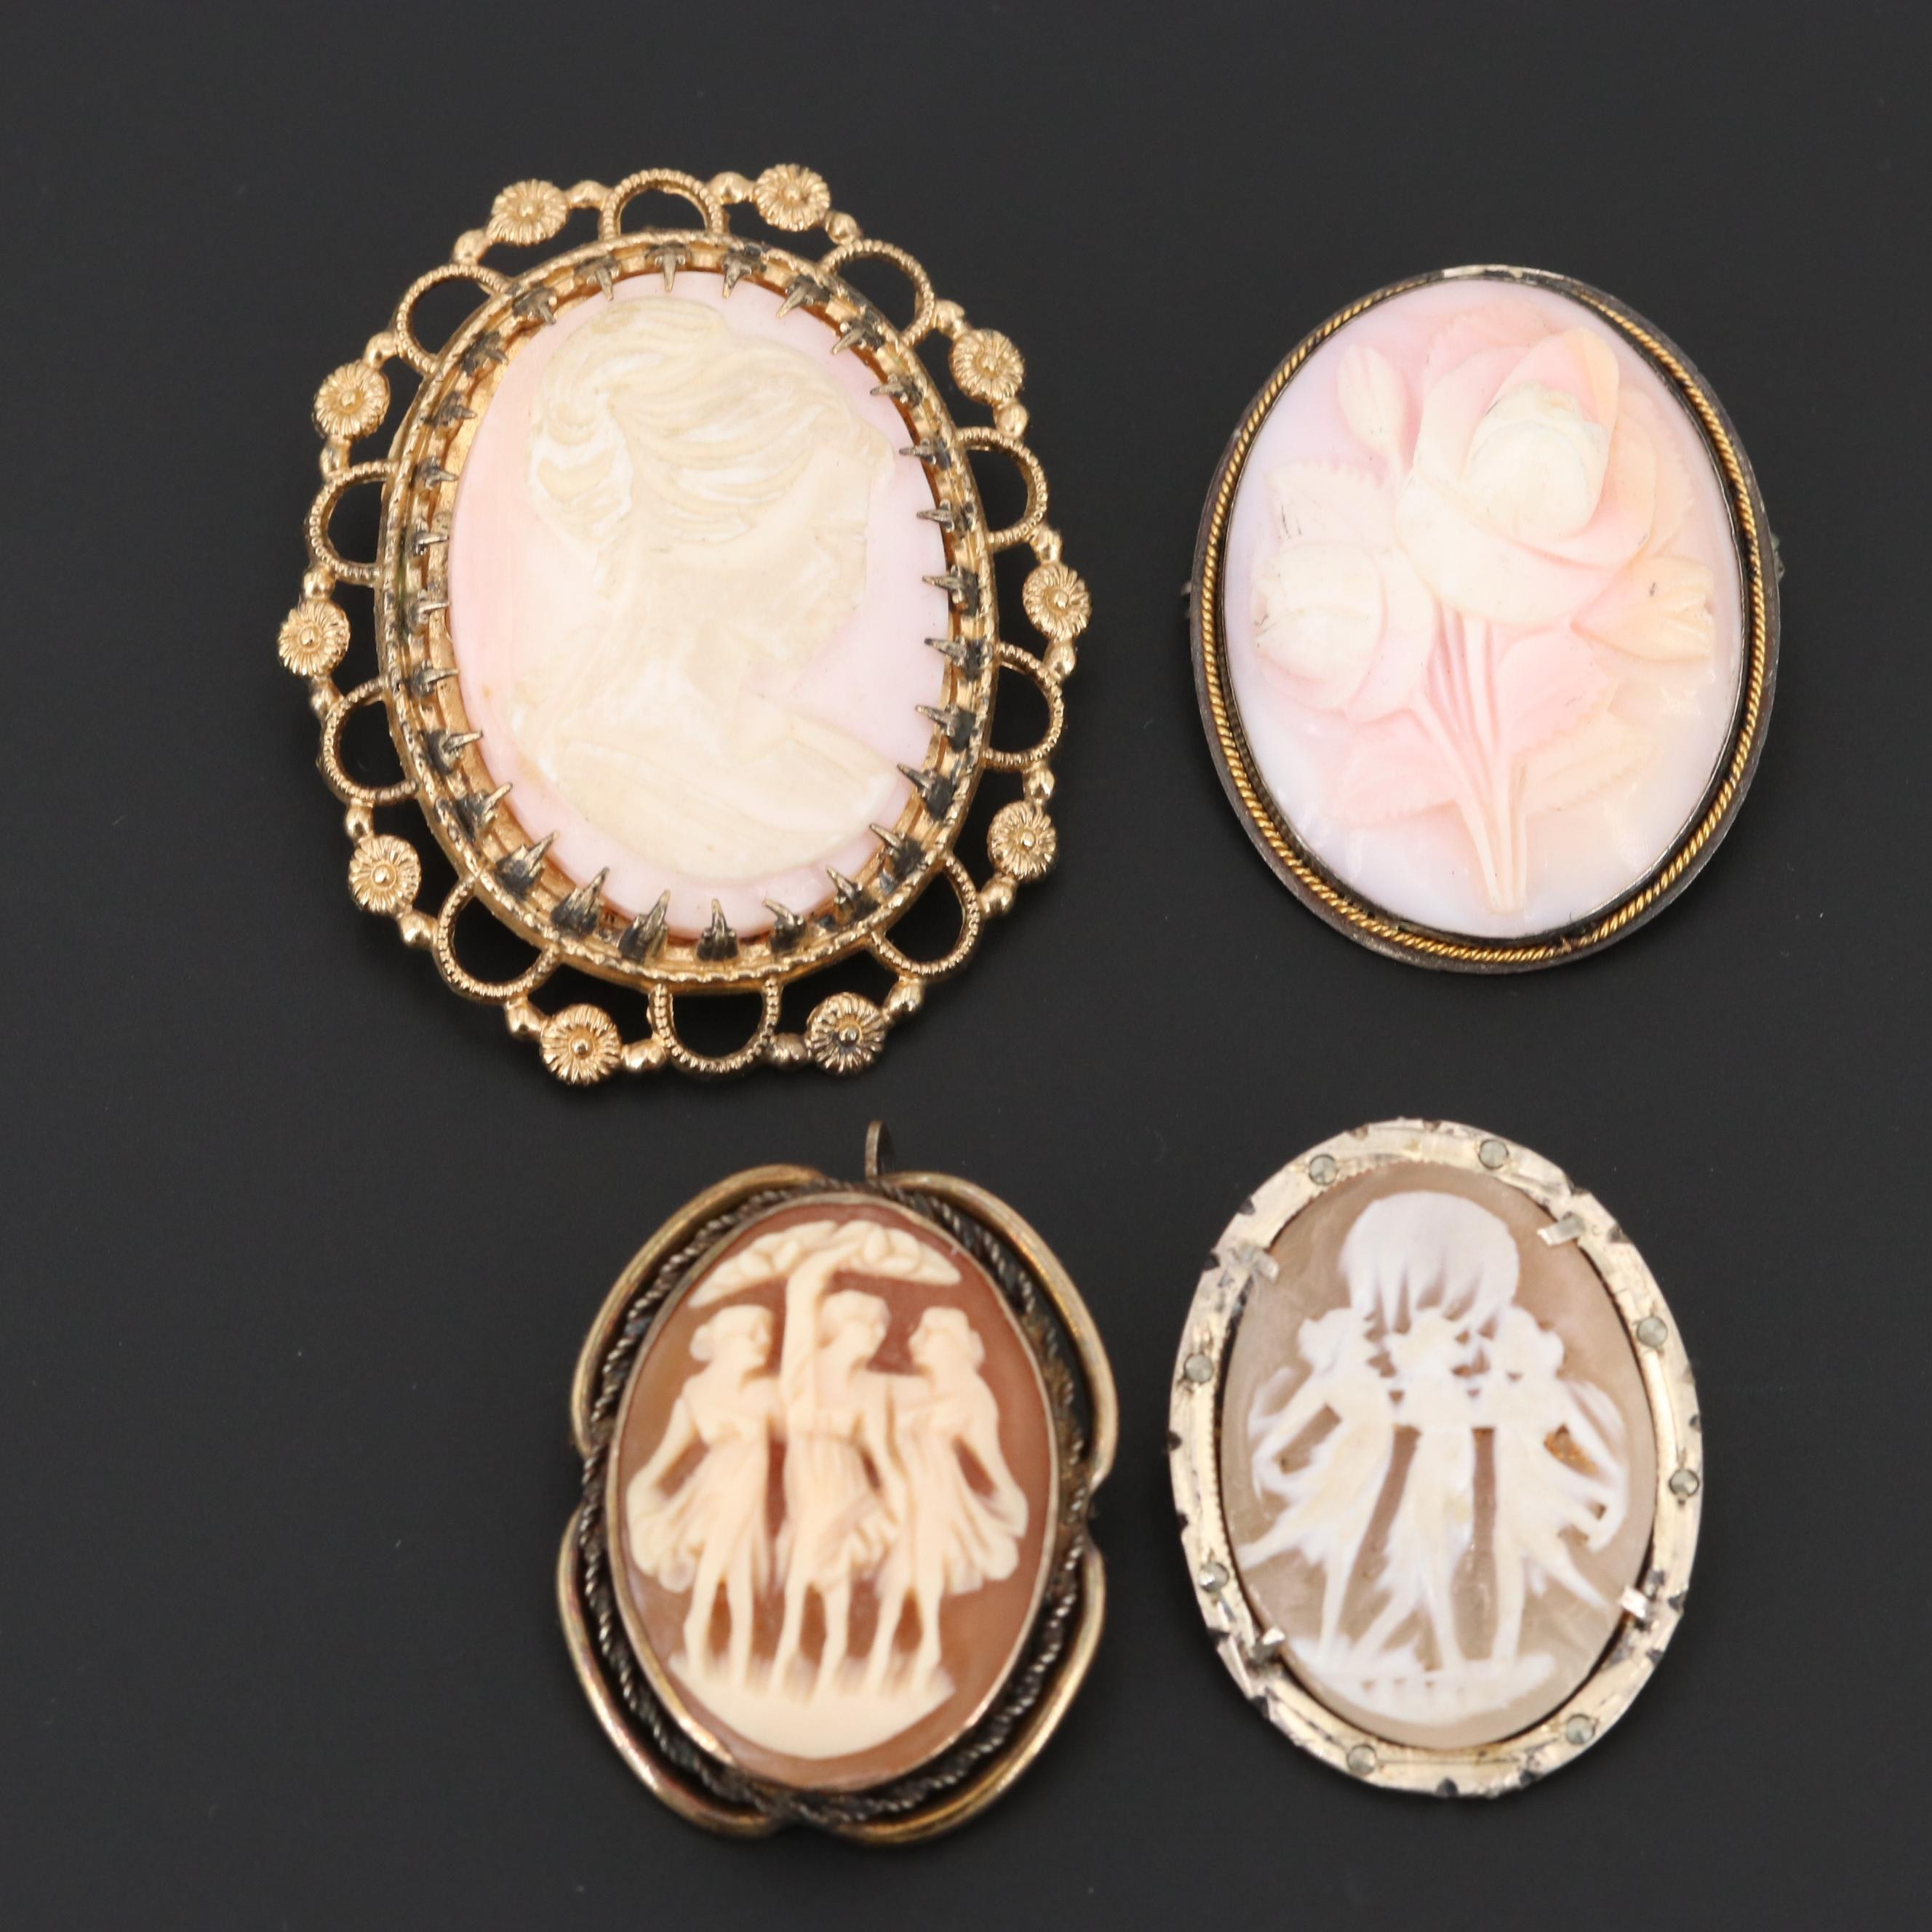 800, 900, Sterling Silver and 10K Gold Filled Shell Cameo Converter Brooches